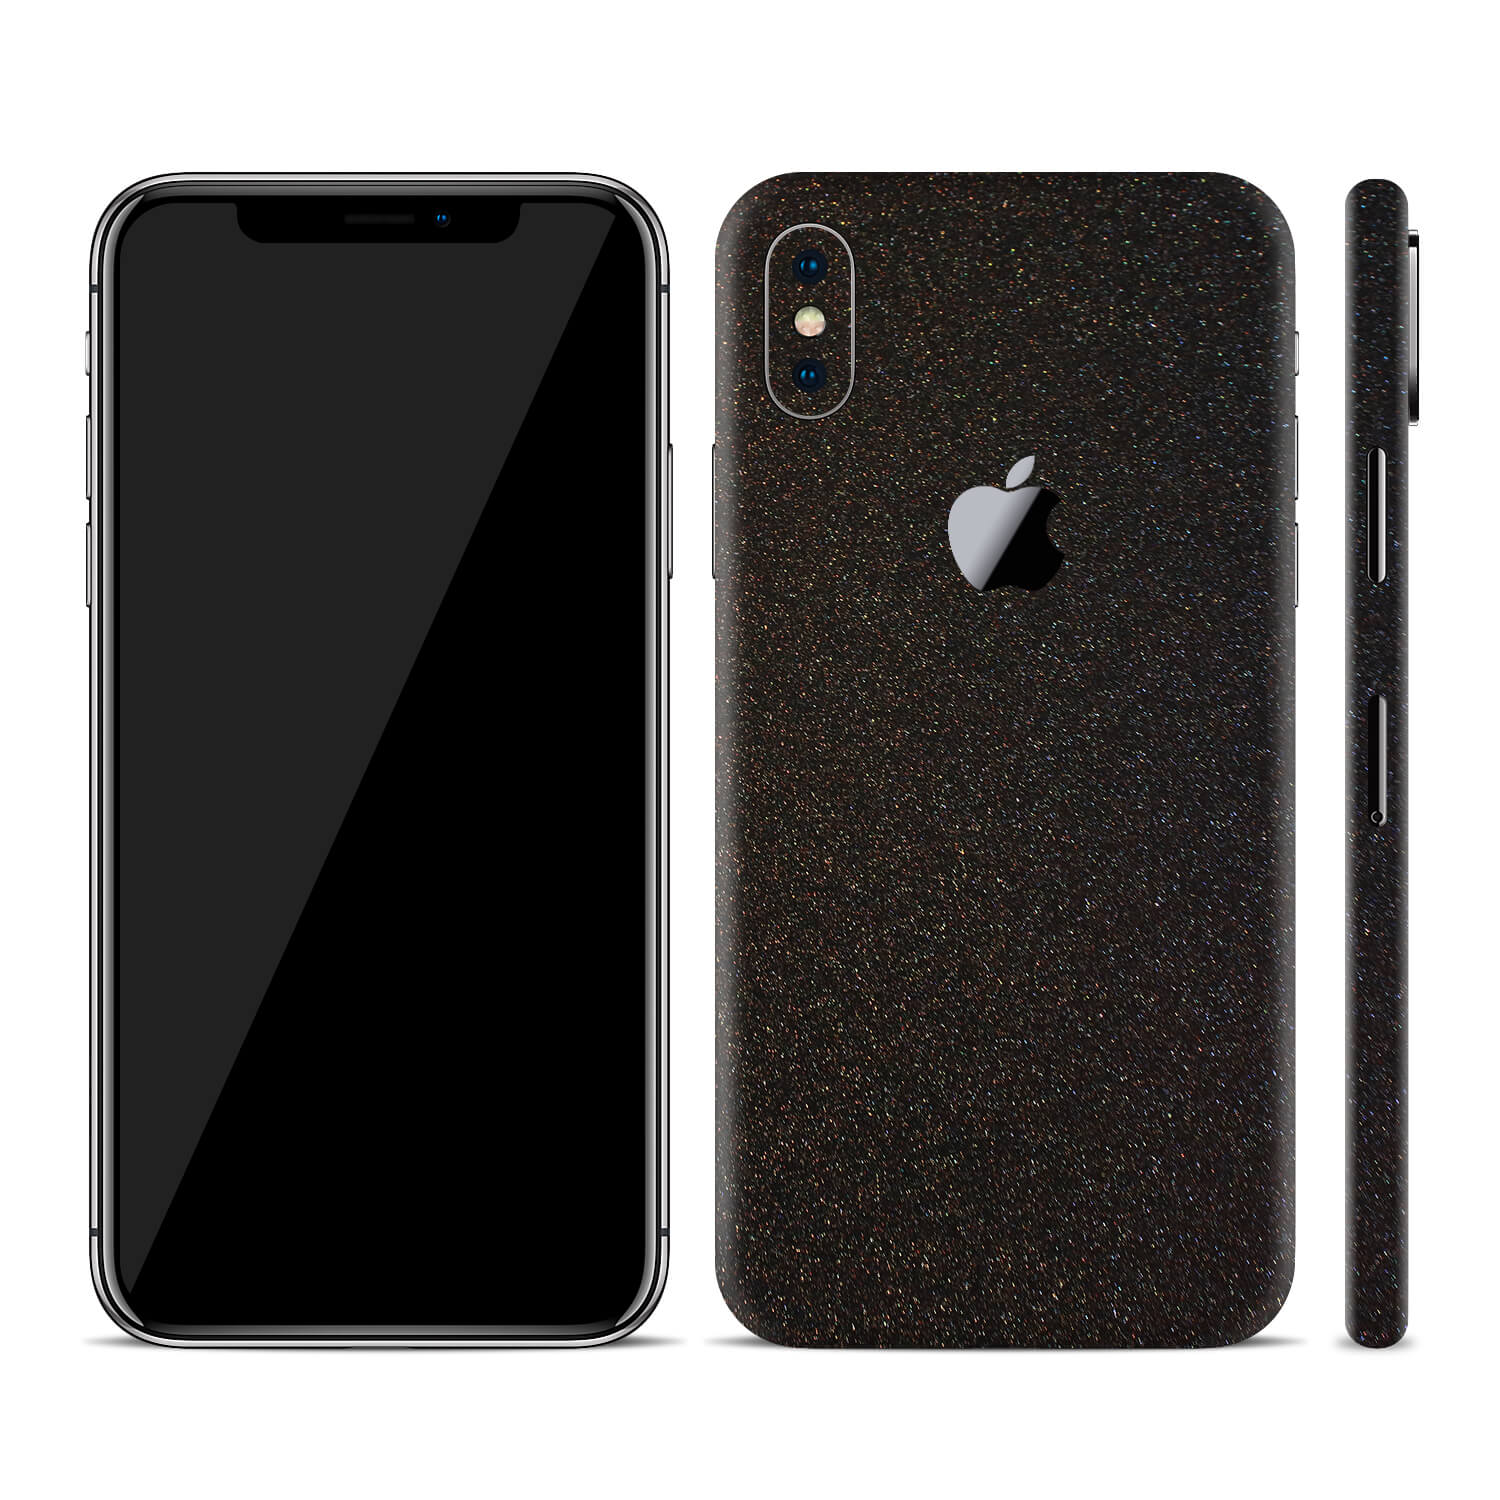 competitive price 7e5c2 951f7 iPhone XS Skins